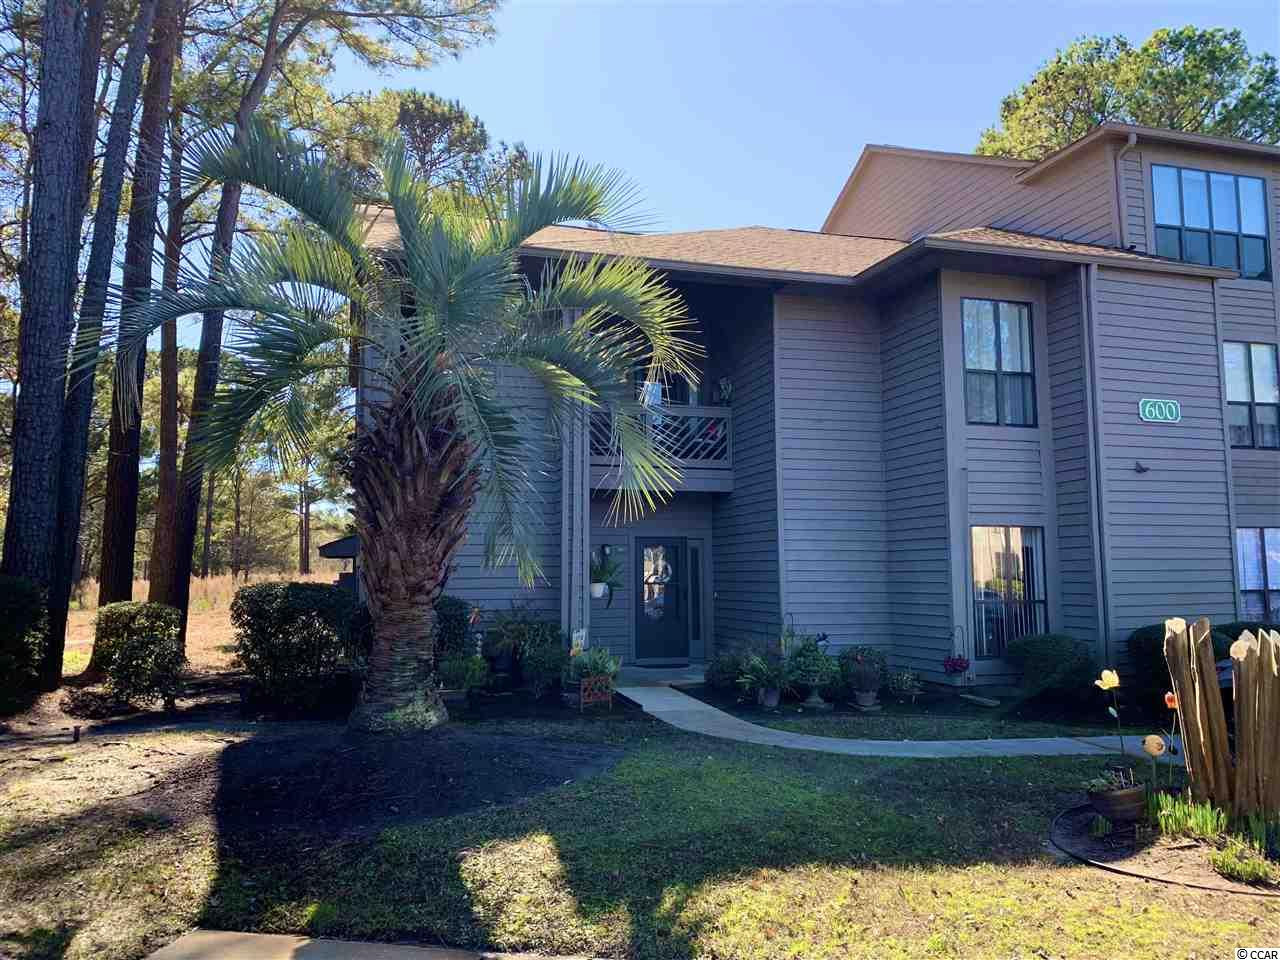 Completely updated condo in quiet community east of 17 Bypass, 2 miles from the beaches at Garden City. The Murrells Inlet Marshwalk, Garden City Pier, Golf, Shopping, Dining and more all within minutes. This kind of updated space is hard to find in this price point. Floor plan features split bedrooms, walk in closets, remodeled bathrooms and kitchen, all seasons rear porch, all new paint, tile and carpeting. This unit is being sold unfurnished. All measurements are approximate and not guaranteed. The buyer is responsible for verification.